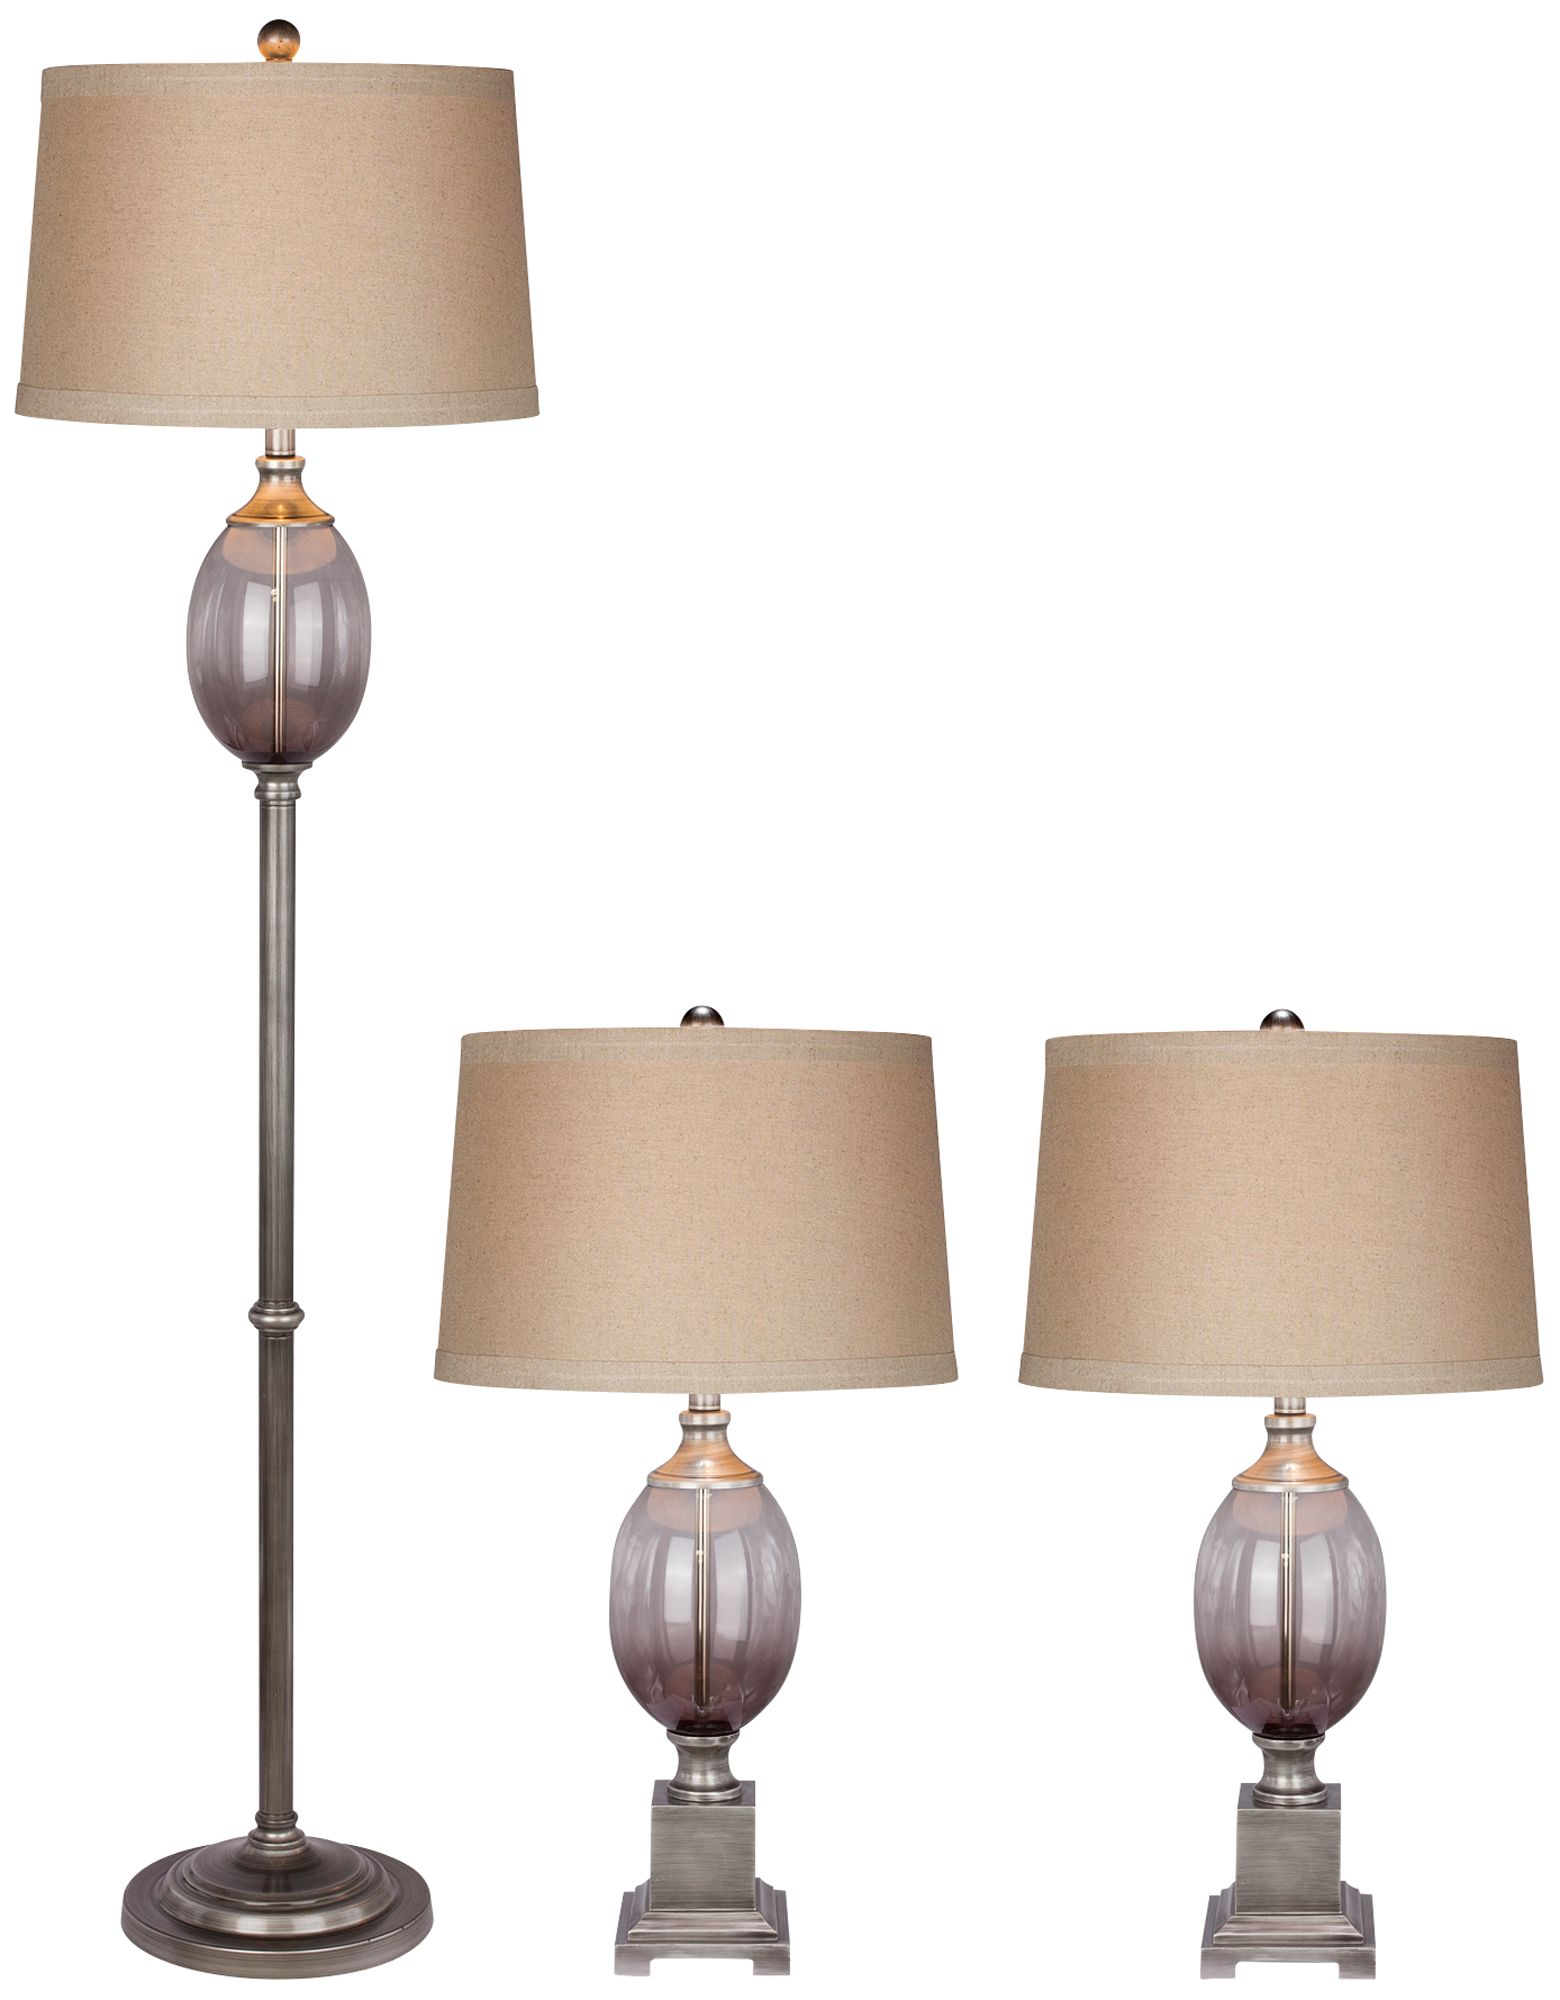 Toldos Gray Metal And Glass Floor And Table Lamp Set